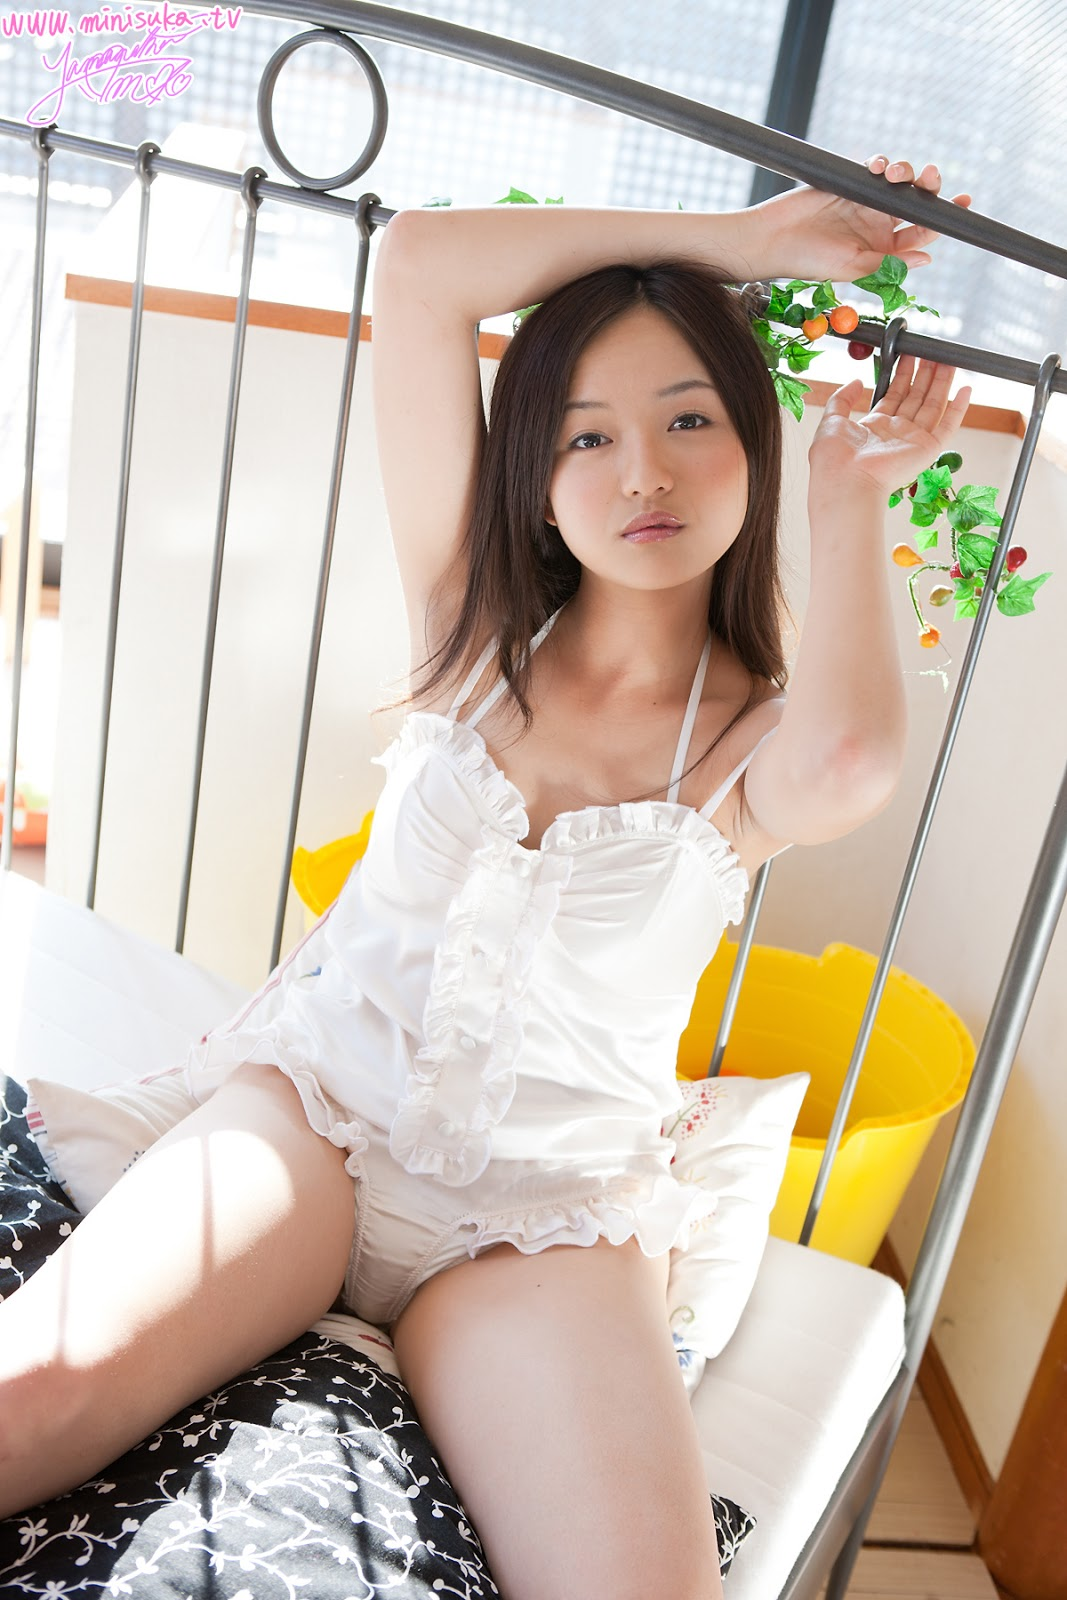 Japanessenude blogspot pics naked photos